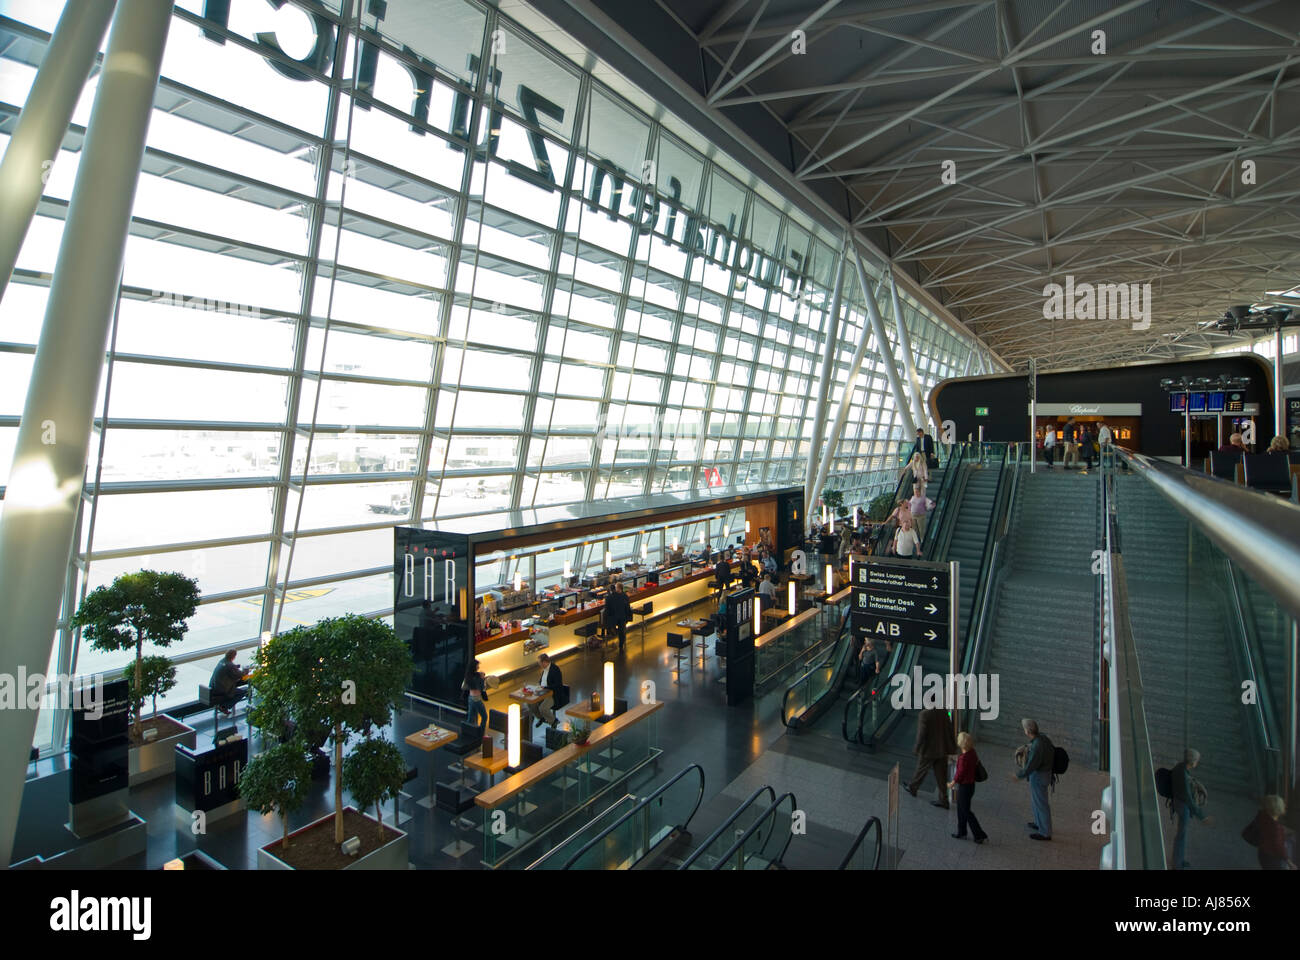 Airside Center, Fifth expansion, Zurich airport, Switzerland - Stock Image